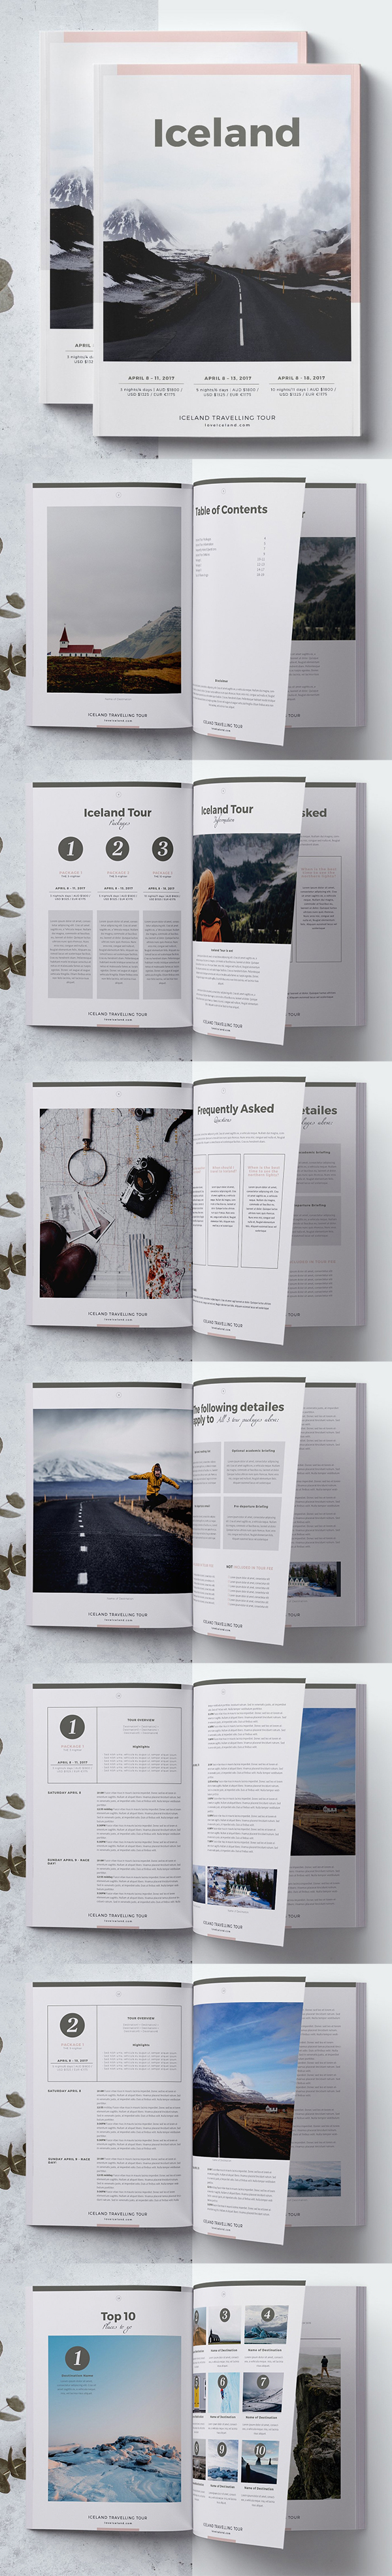 100 Professional Corporate Brochure Templates - 69